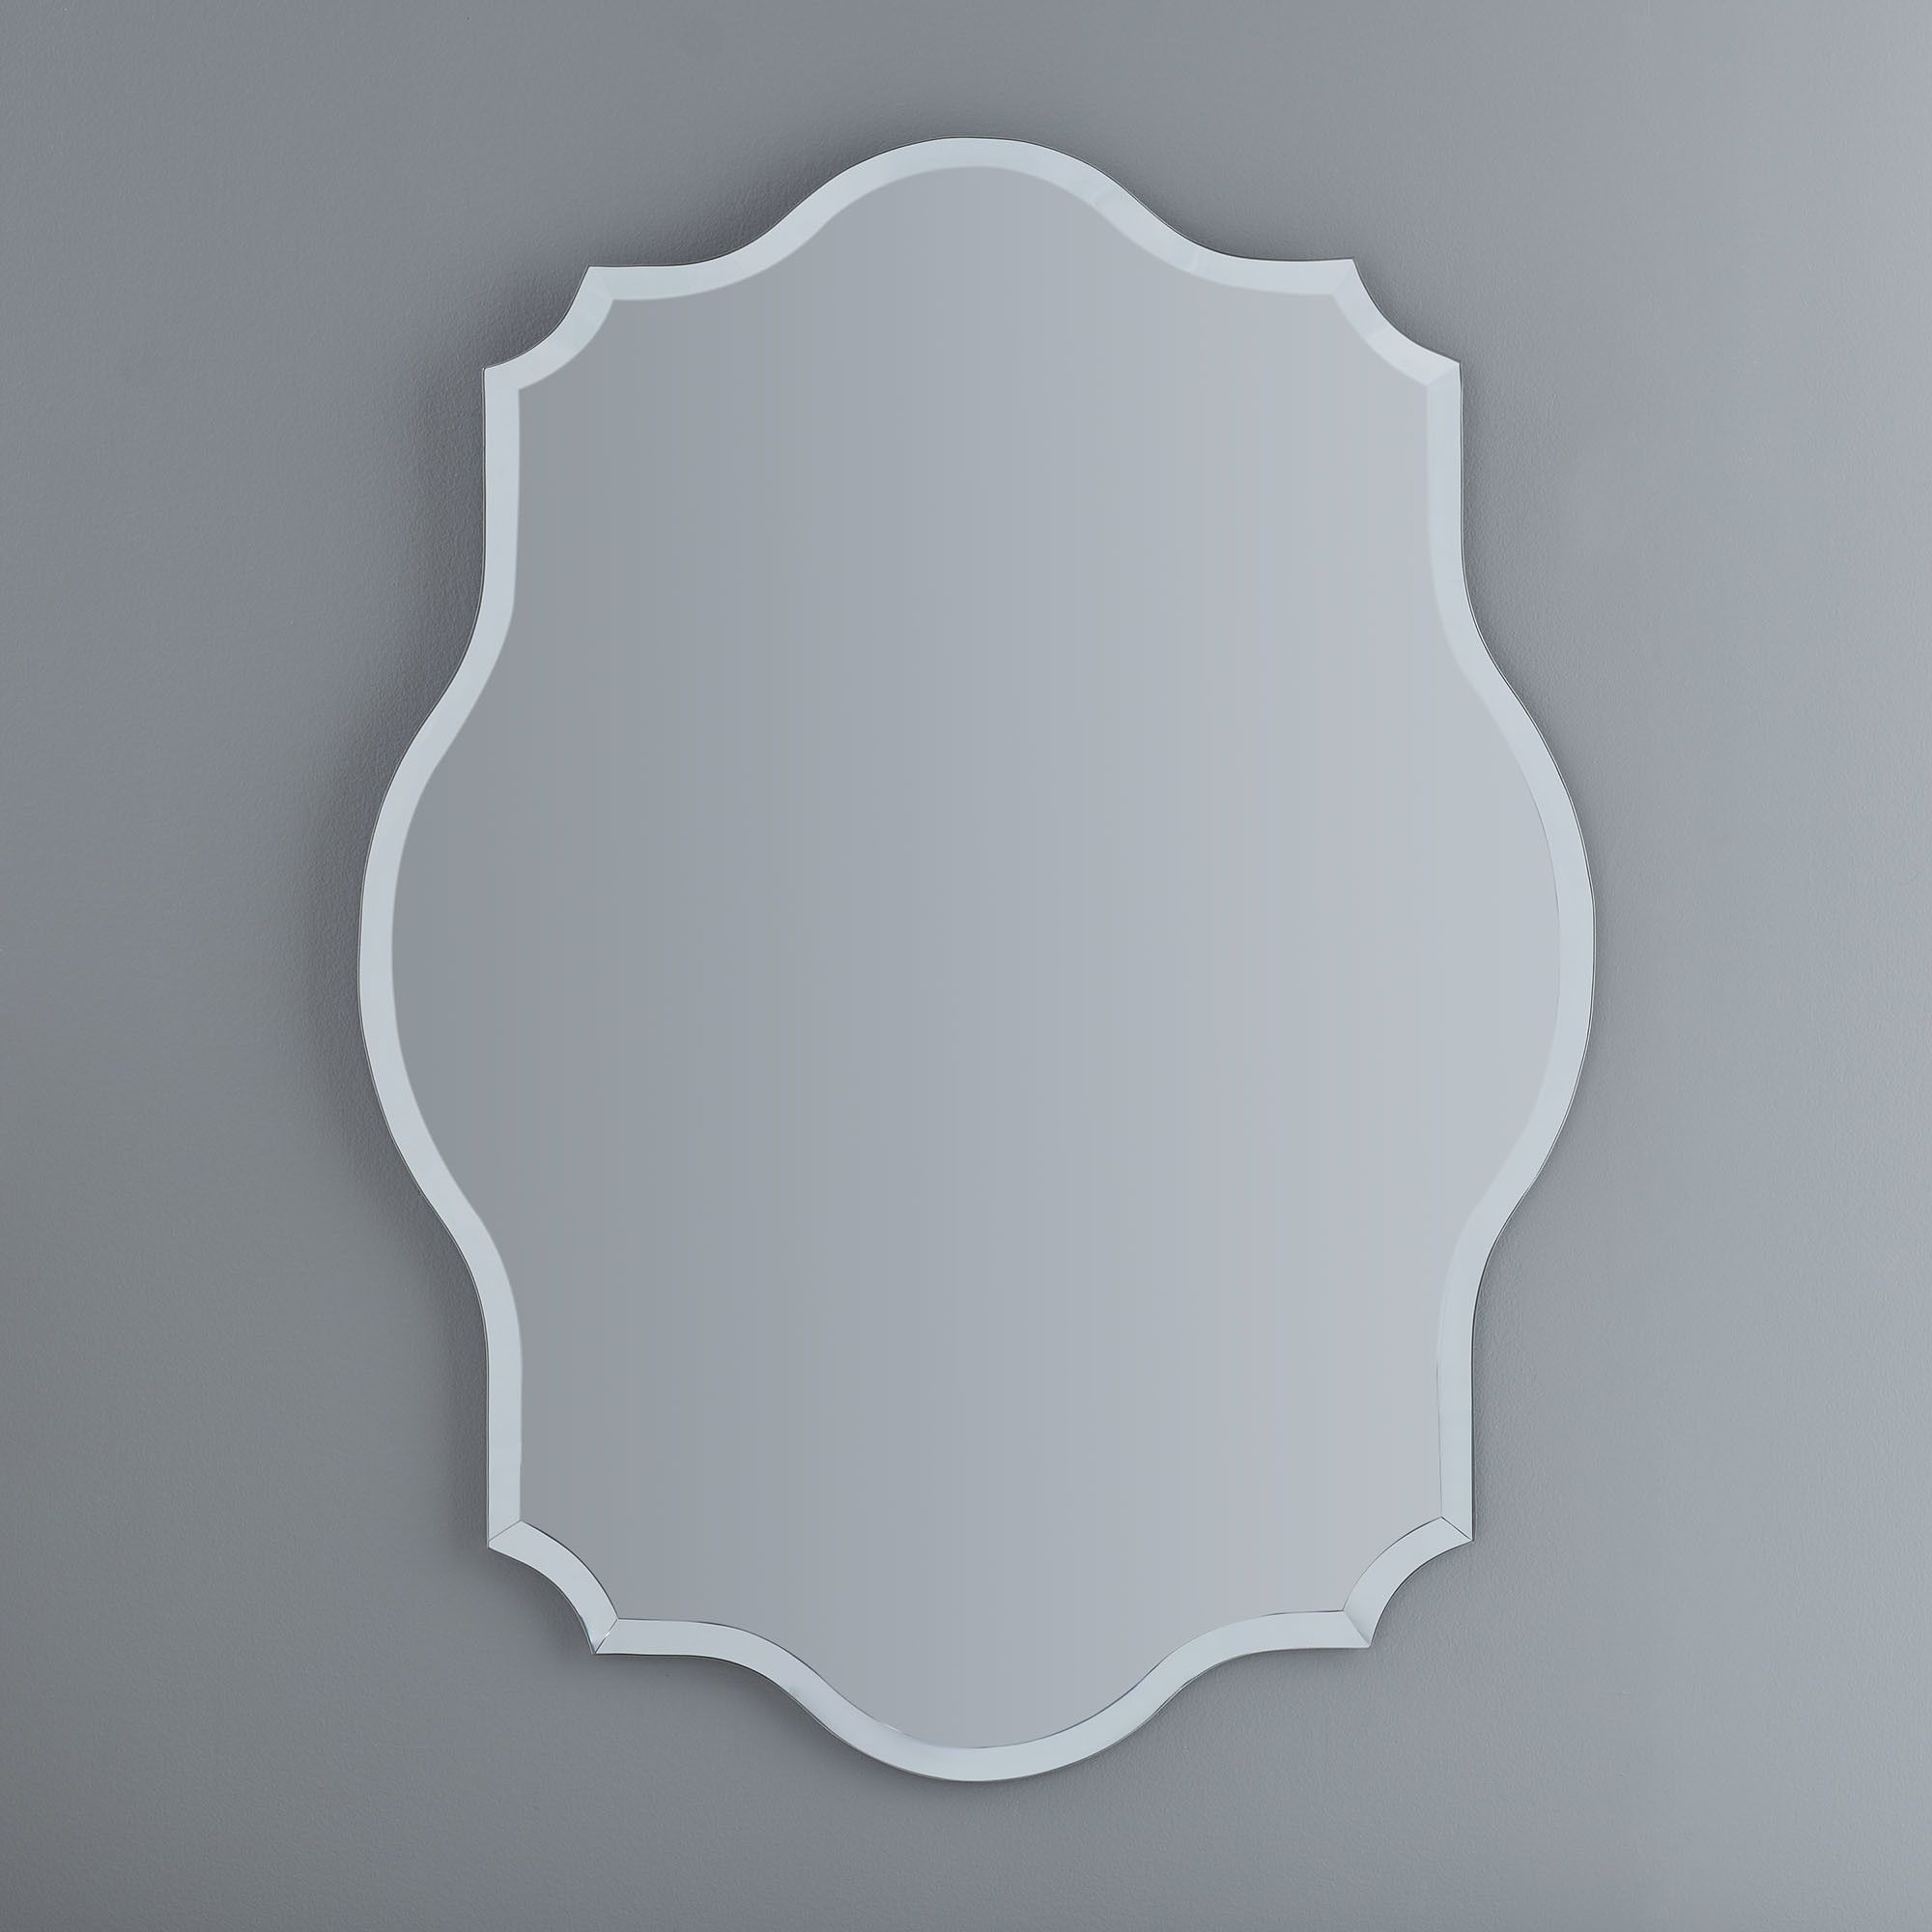 Guidinha Modern & Contemporary Accent Mirror | Products Intended For Guidinha Modern & Contemporary Accent Mirrors (Image 7 of 20)